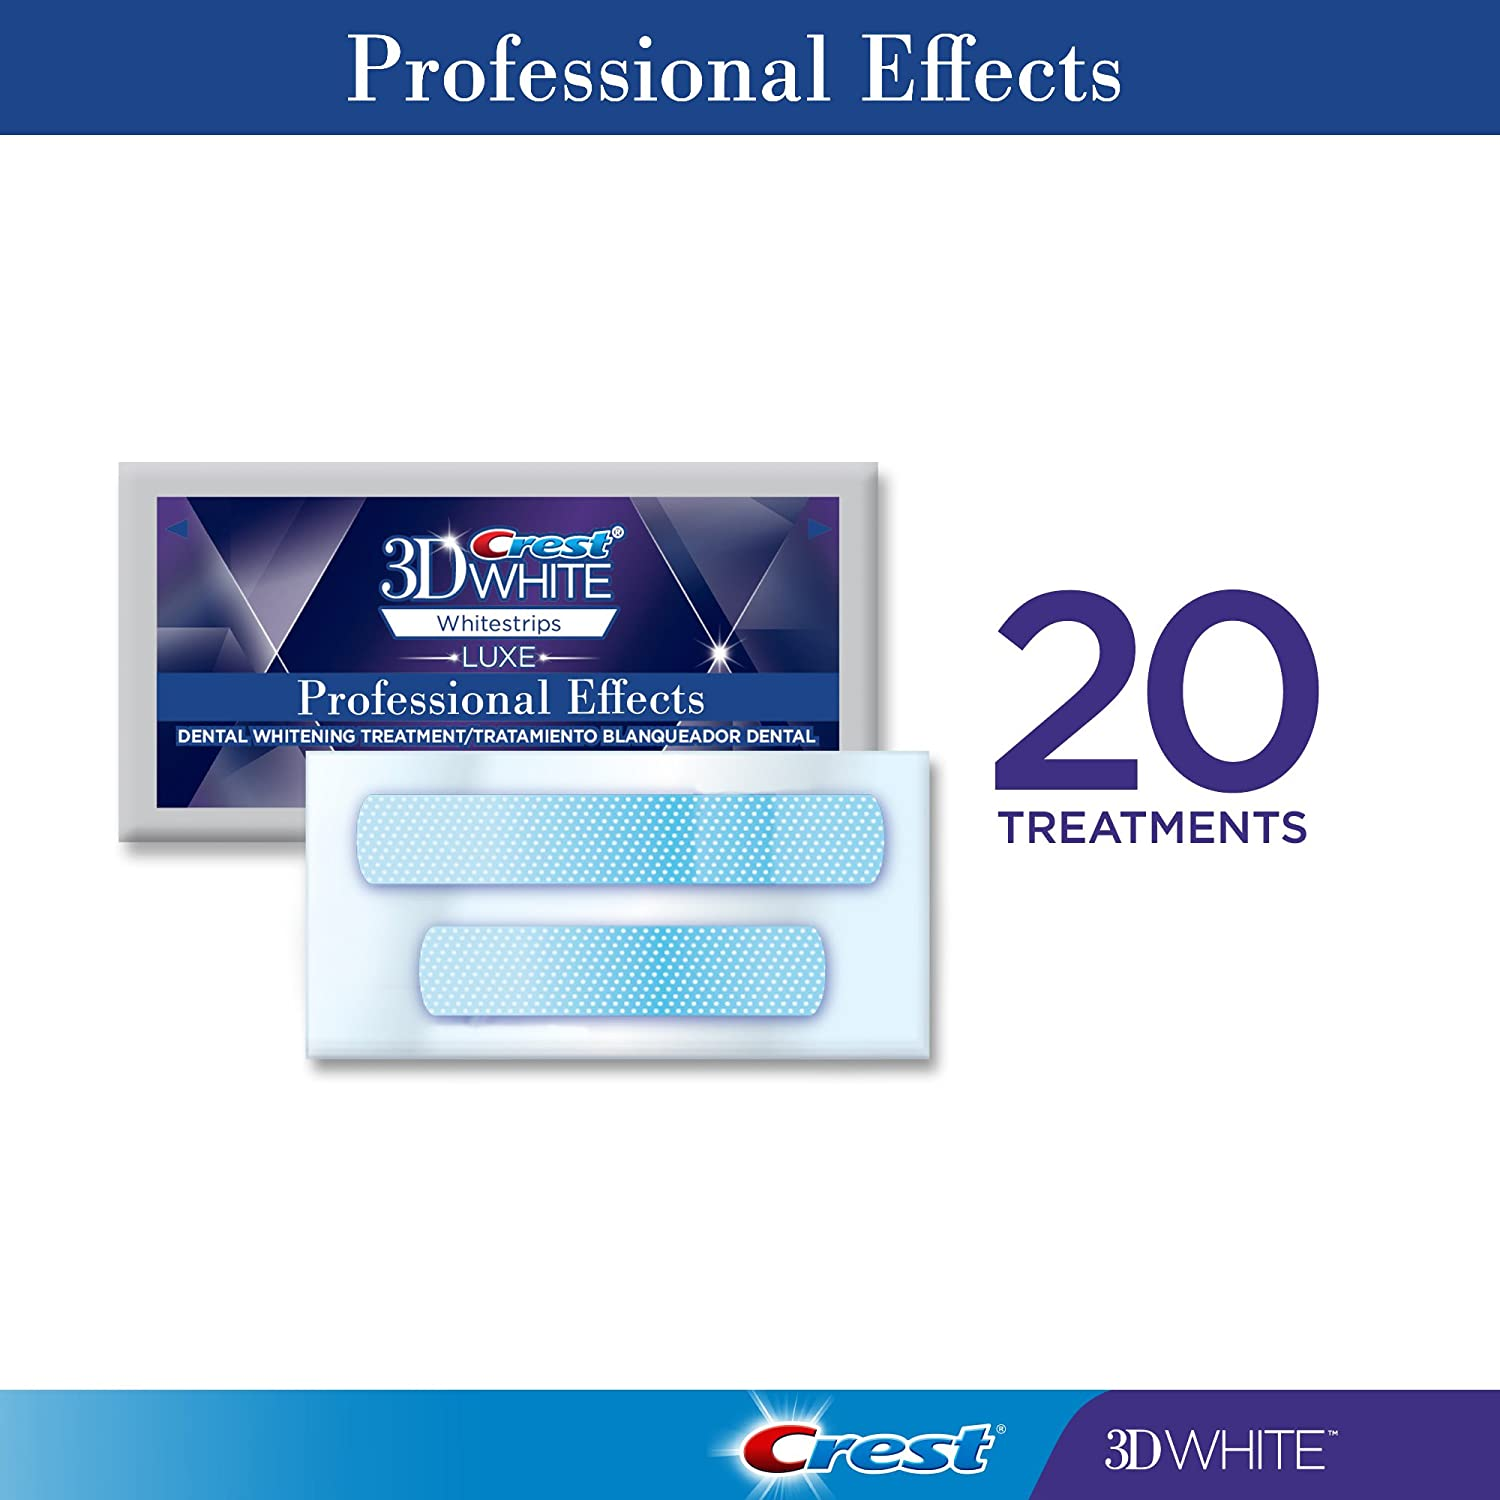 Whitening treatment as is indicated by comparison to the whitening - Amazon Com Crest 3d White Professional Effects Whitestrips Dental Teeth Whitening Strips Kit 20 Treatments Lasts 12 Months Beyond Beauty